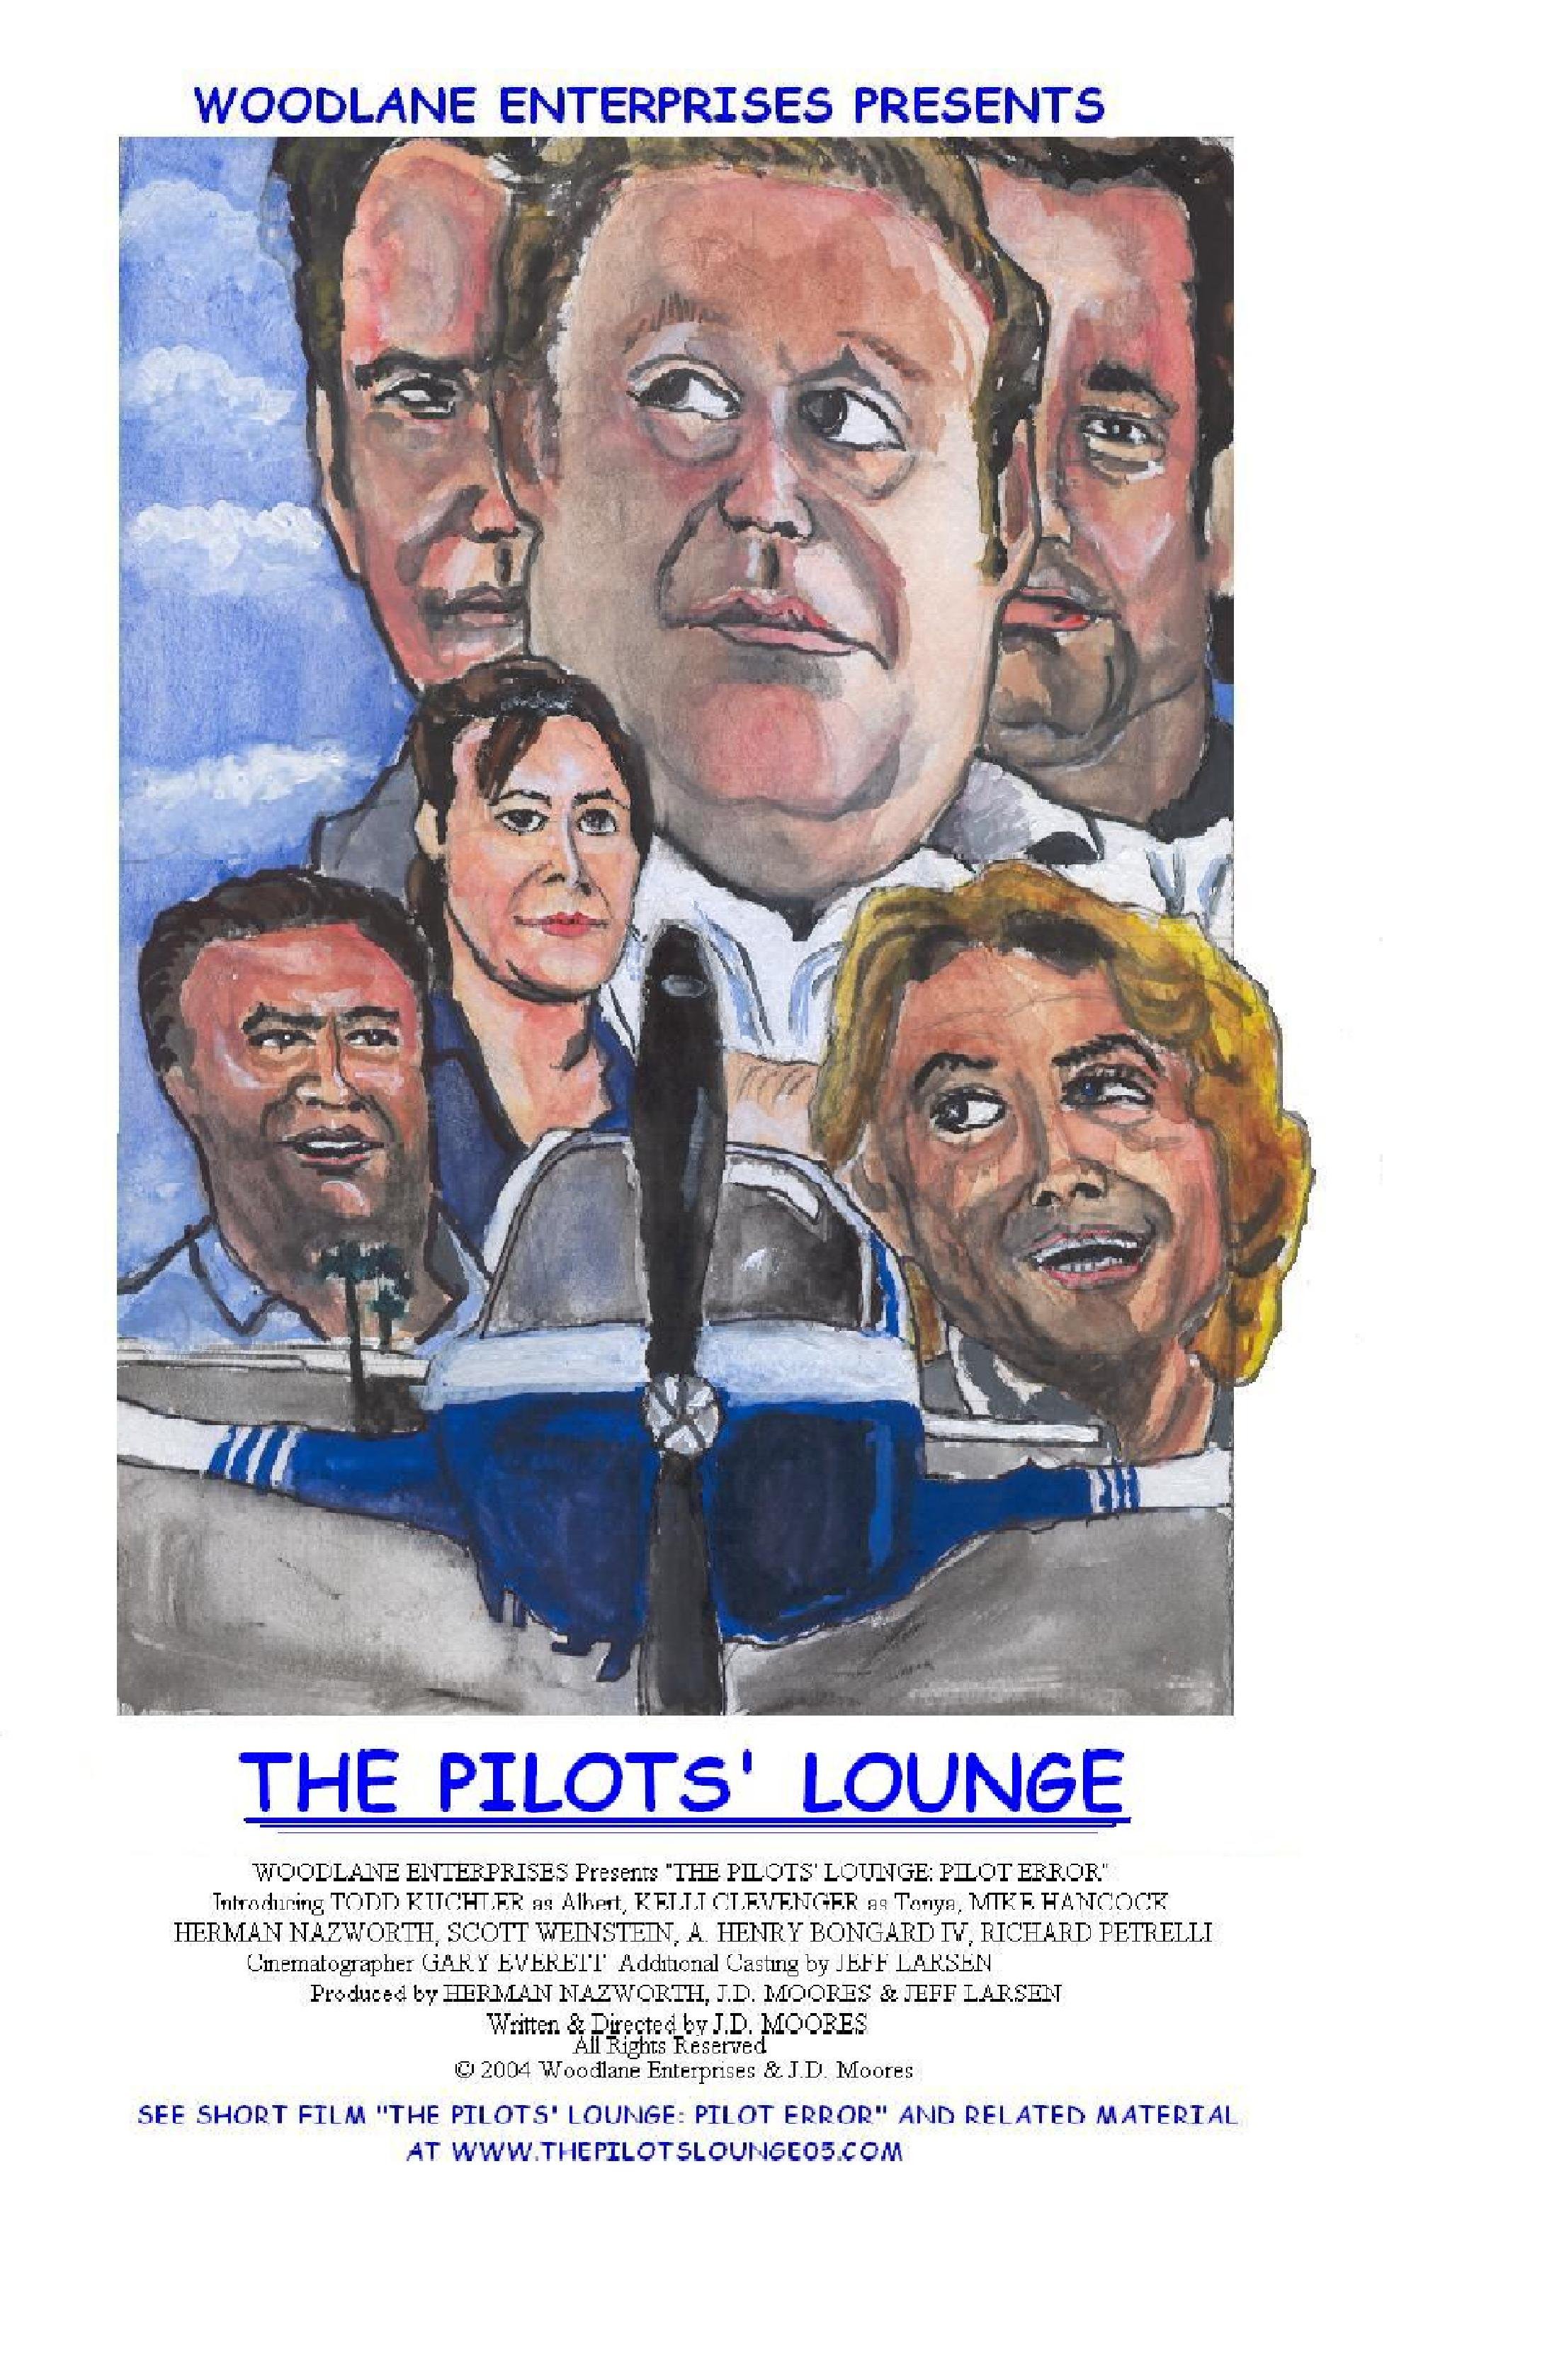 PILOTS' LOUNGE Short Film Poster - See Links Page